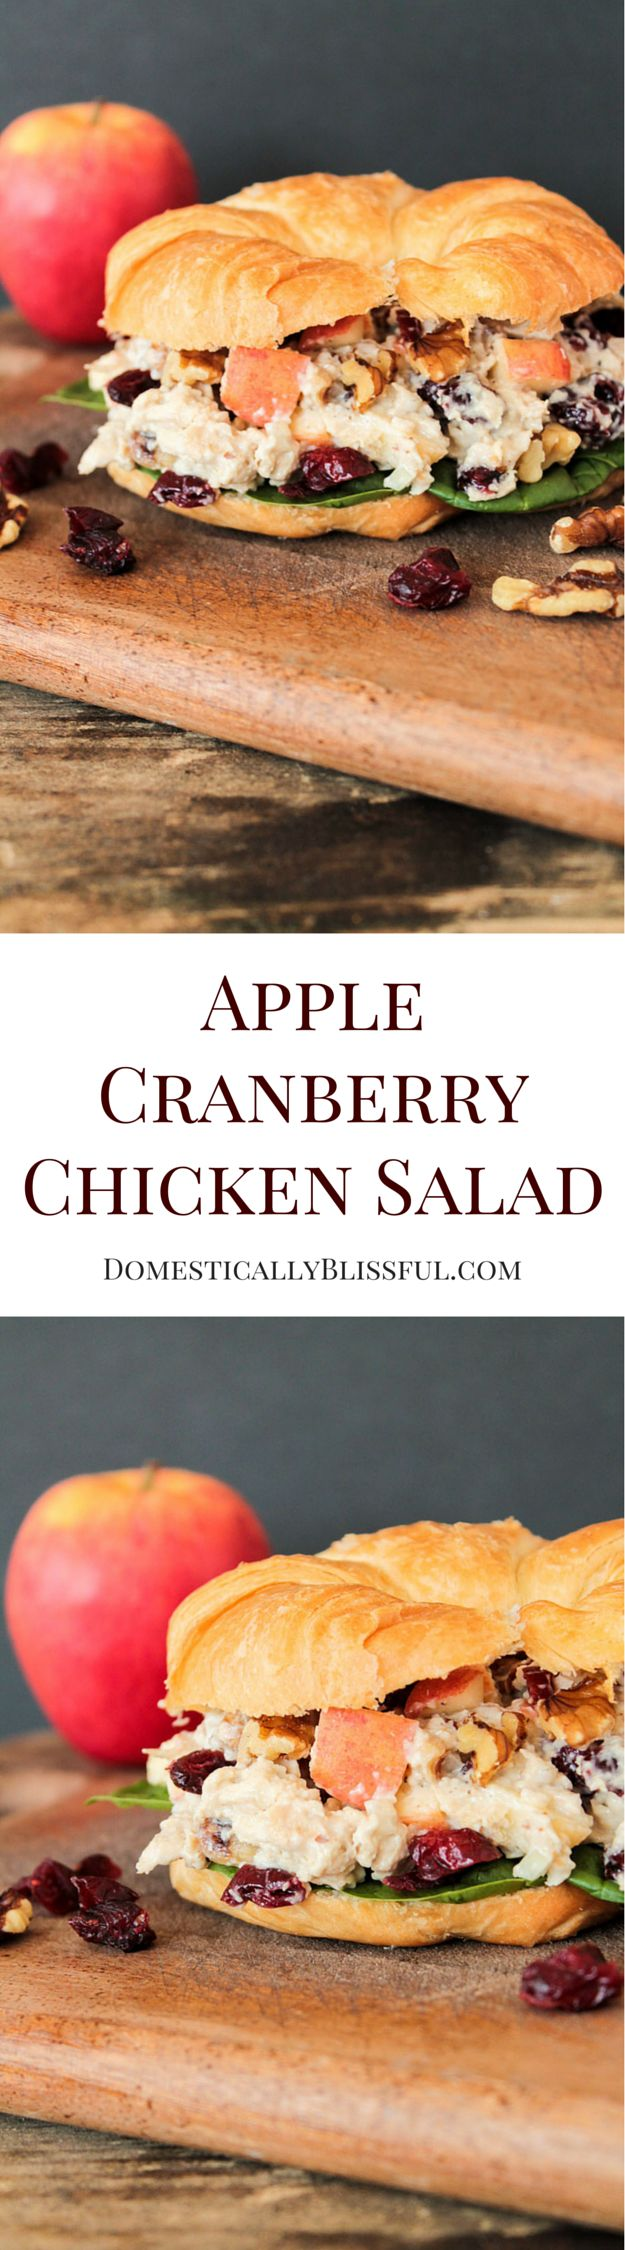 Vegetarian Apple Cranberry Chicken Salad recipe from Domestically Blissful